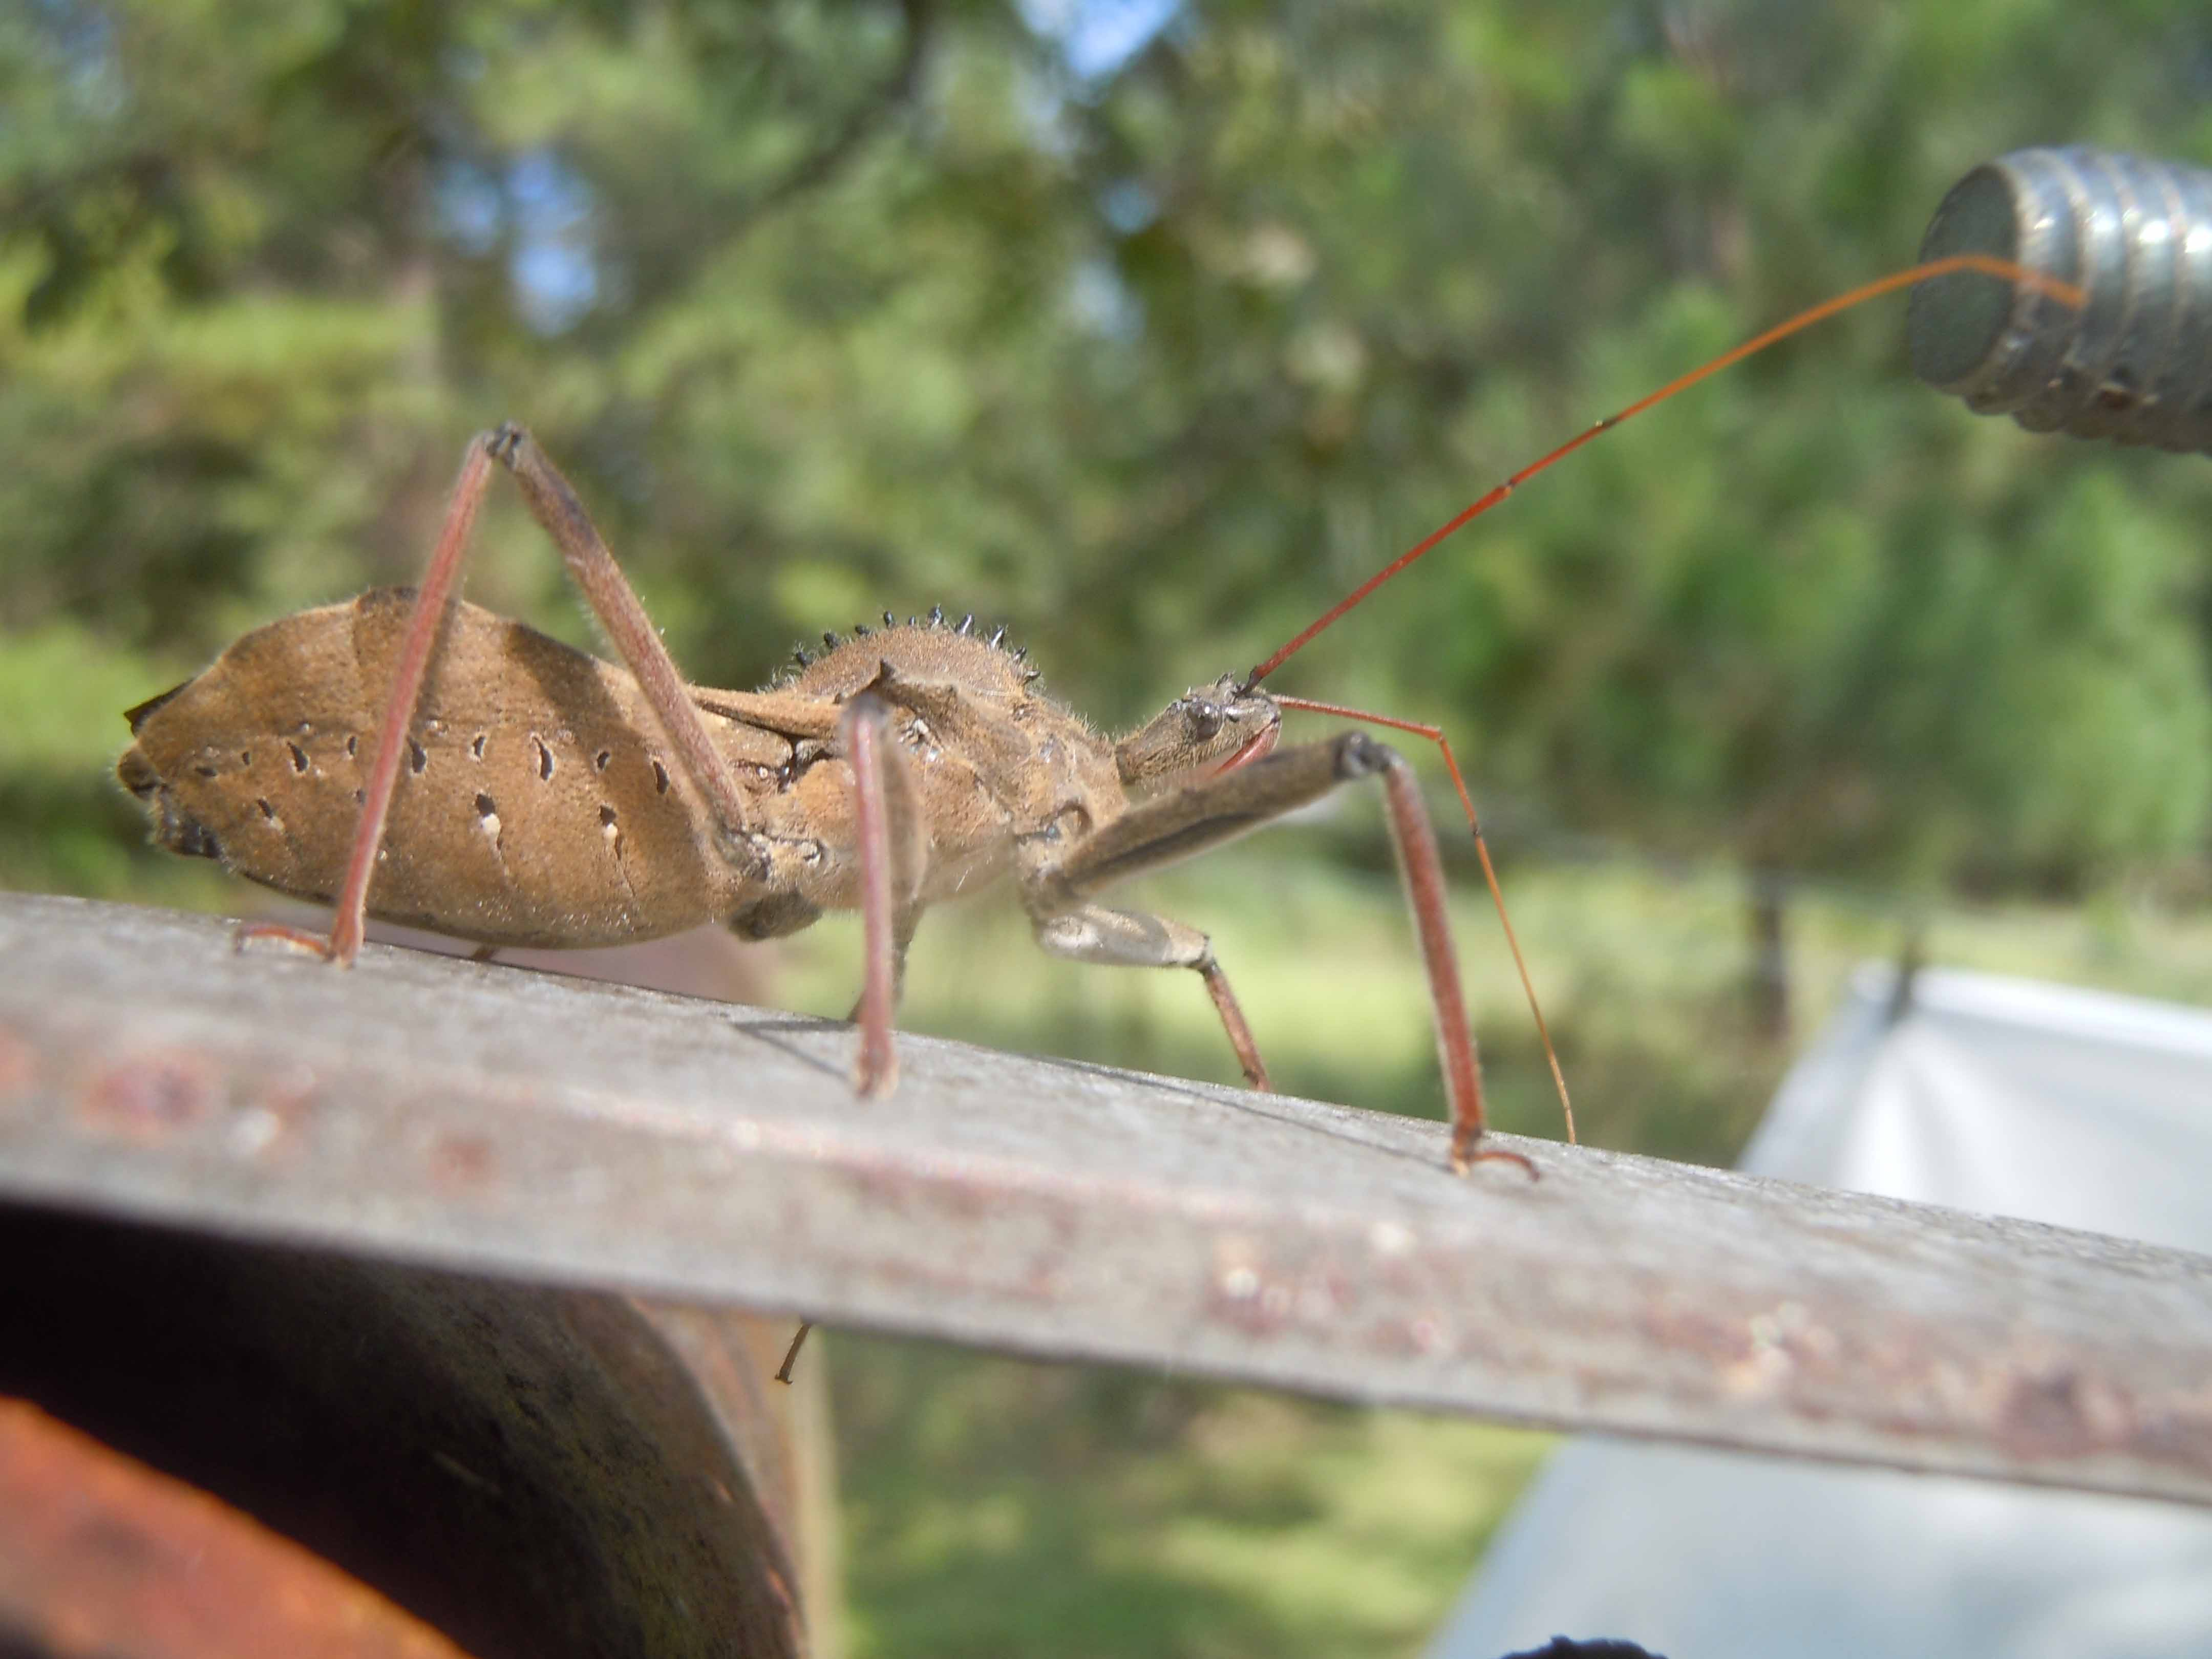 Many Georgians are confusing the common wheel bug, which is beneficial in Georgia gardens, with the kissing bug, which made news earlier this fall.